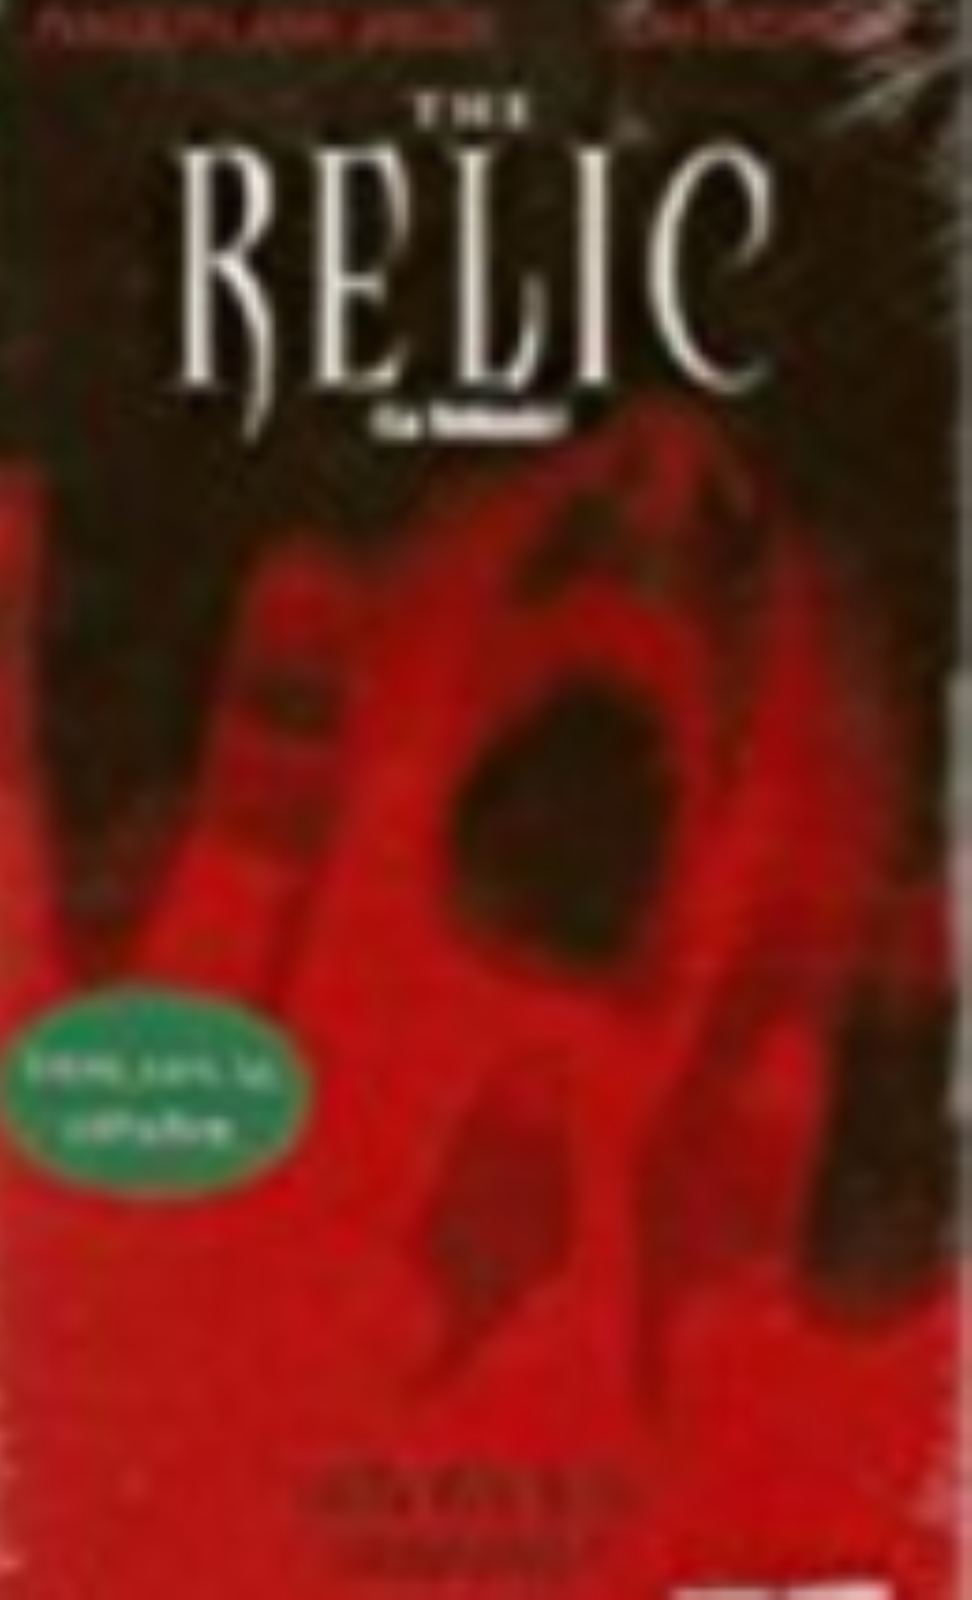 The Relic Vhs